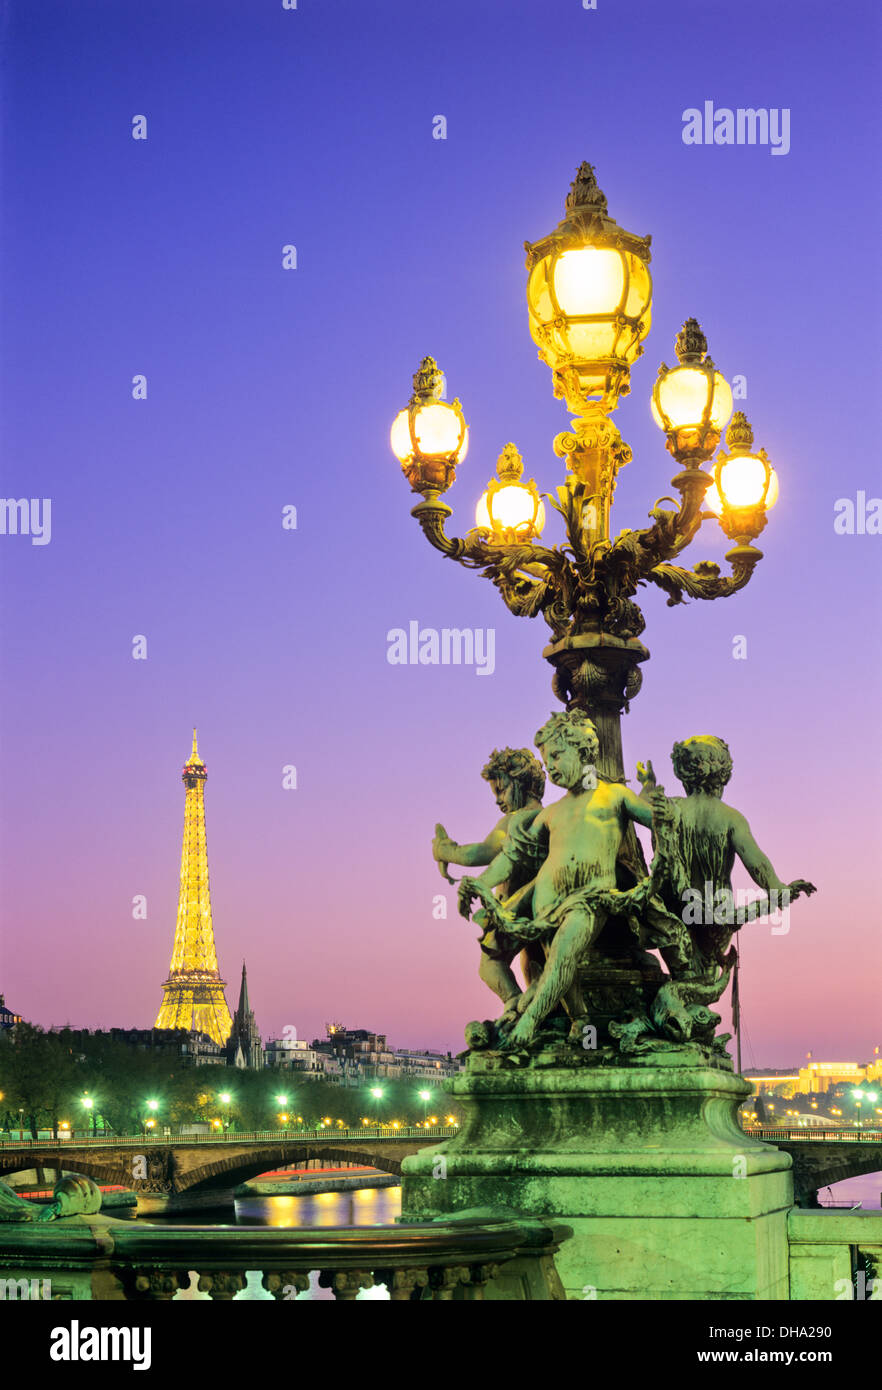 Eiffel Tower from Pont Alexandre III, Paris, France. - Stock Image